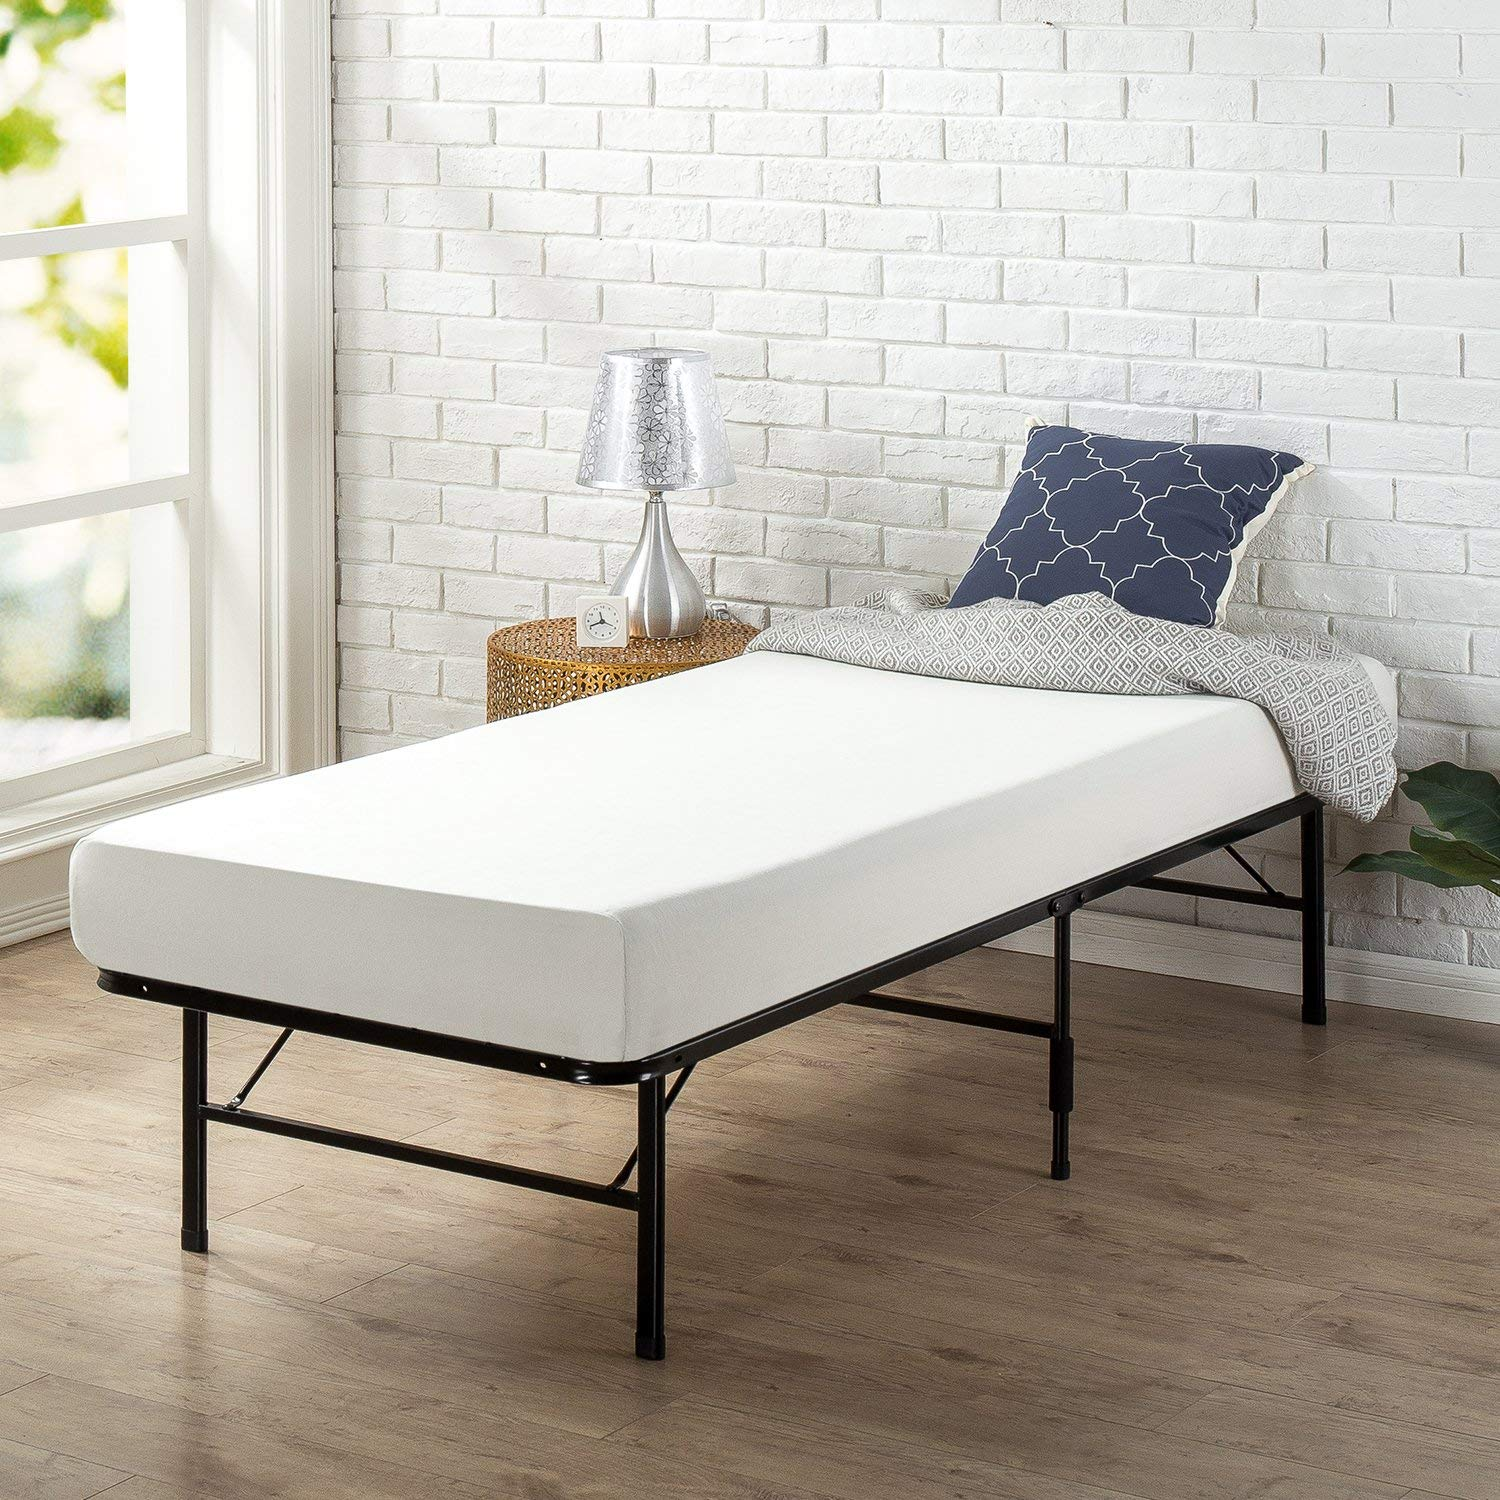 Best Selling Twin Narrow Mattress At Affordable Price 10